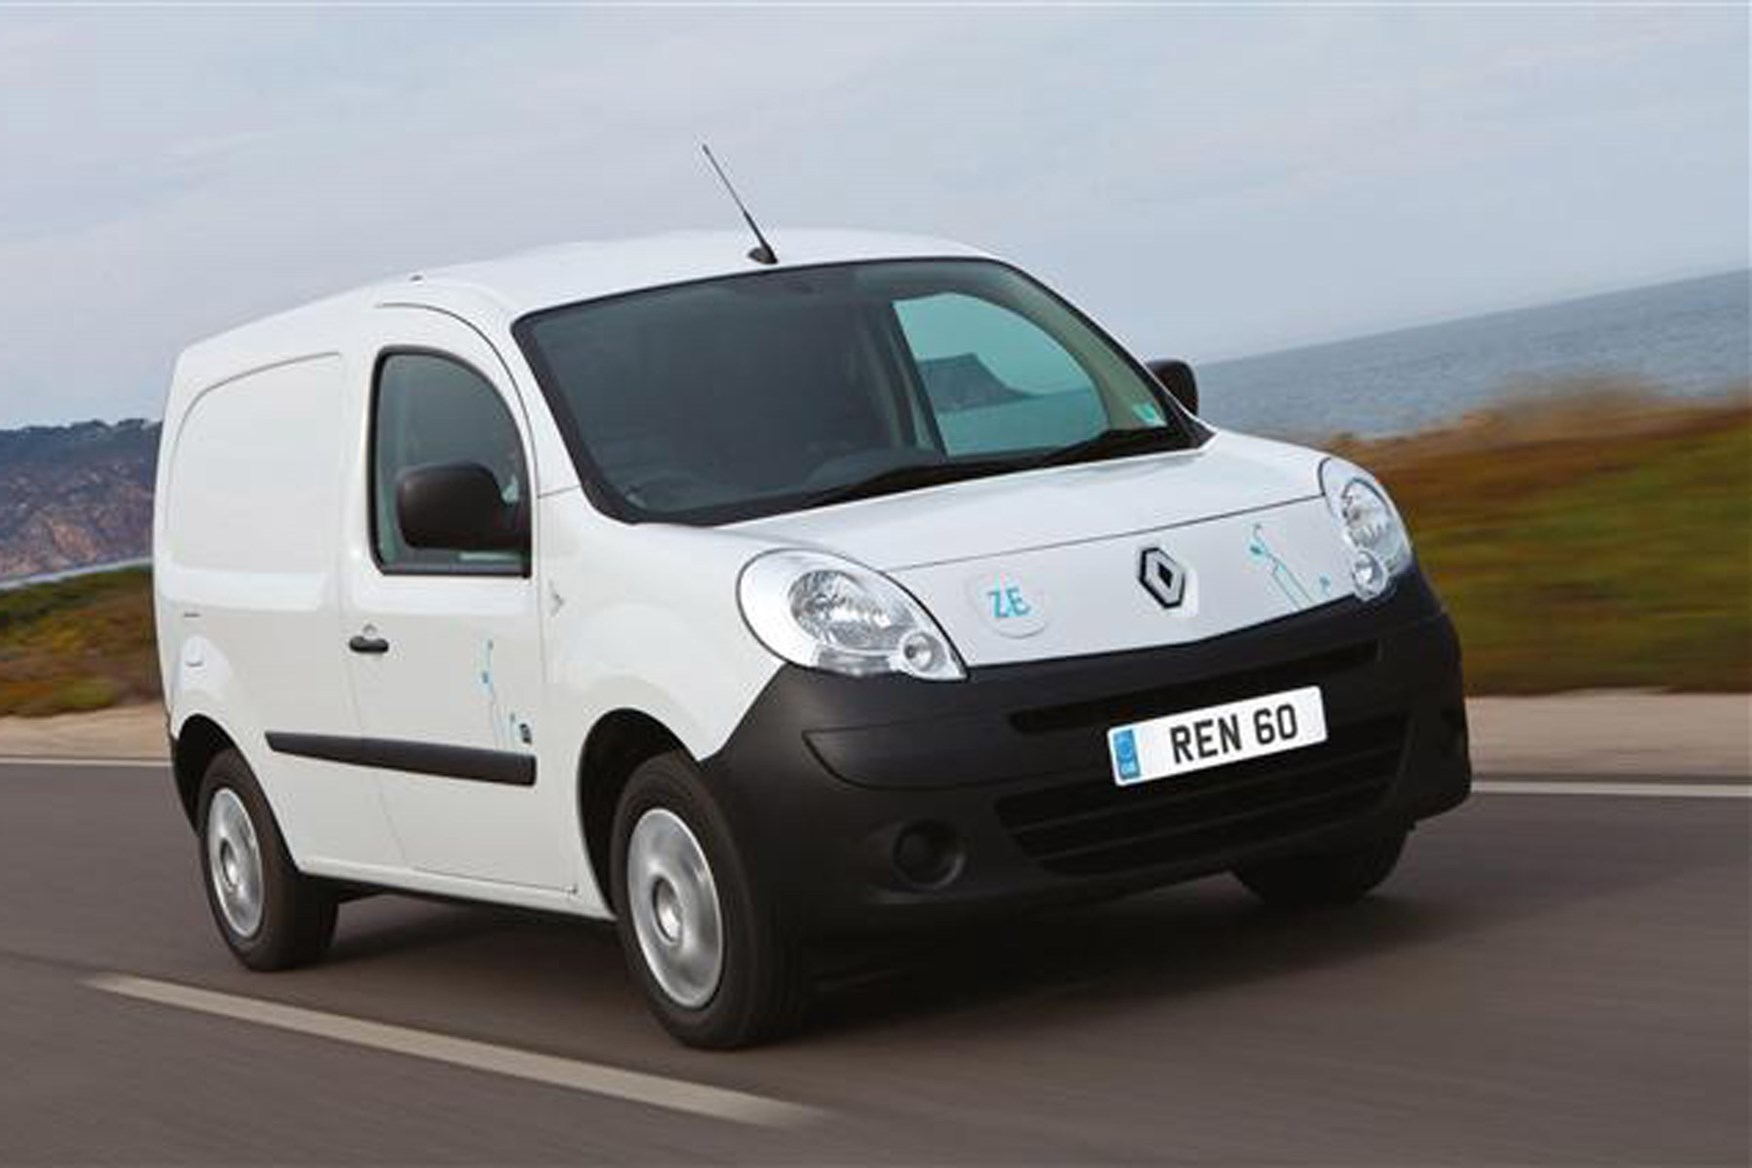 Renault Kangoo full review on Parkers Vans - on the road